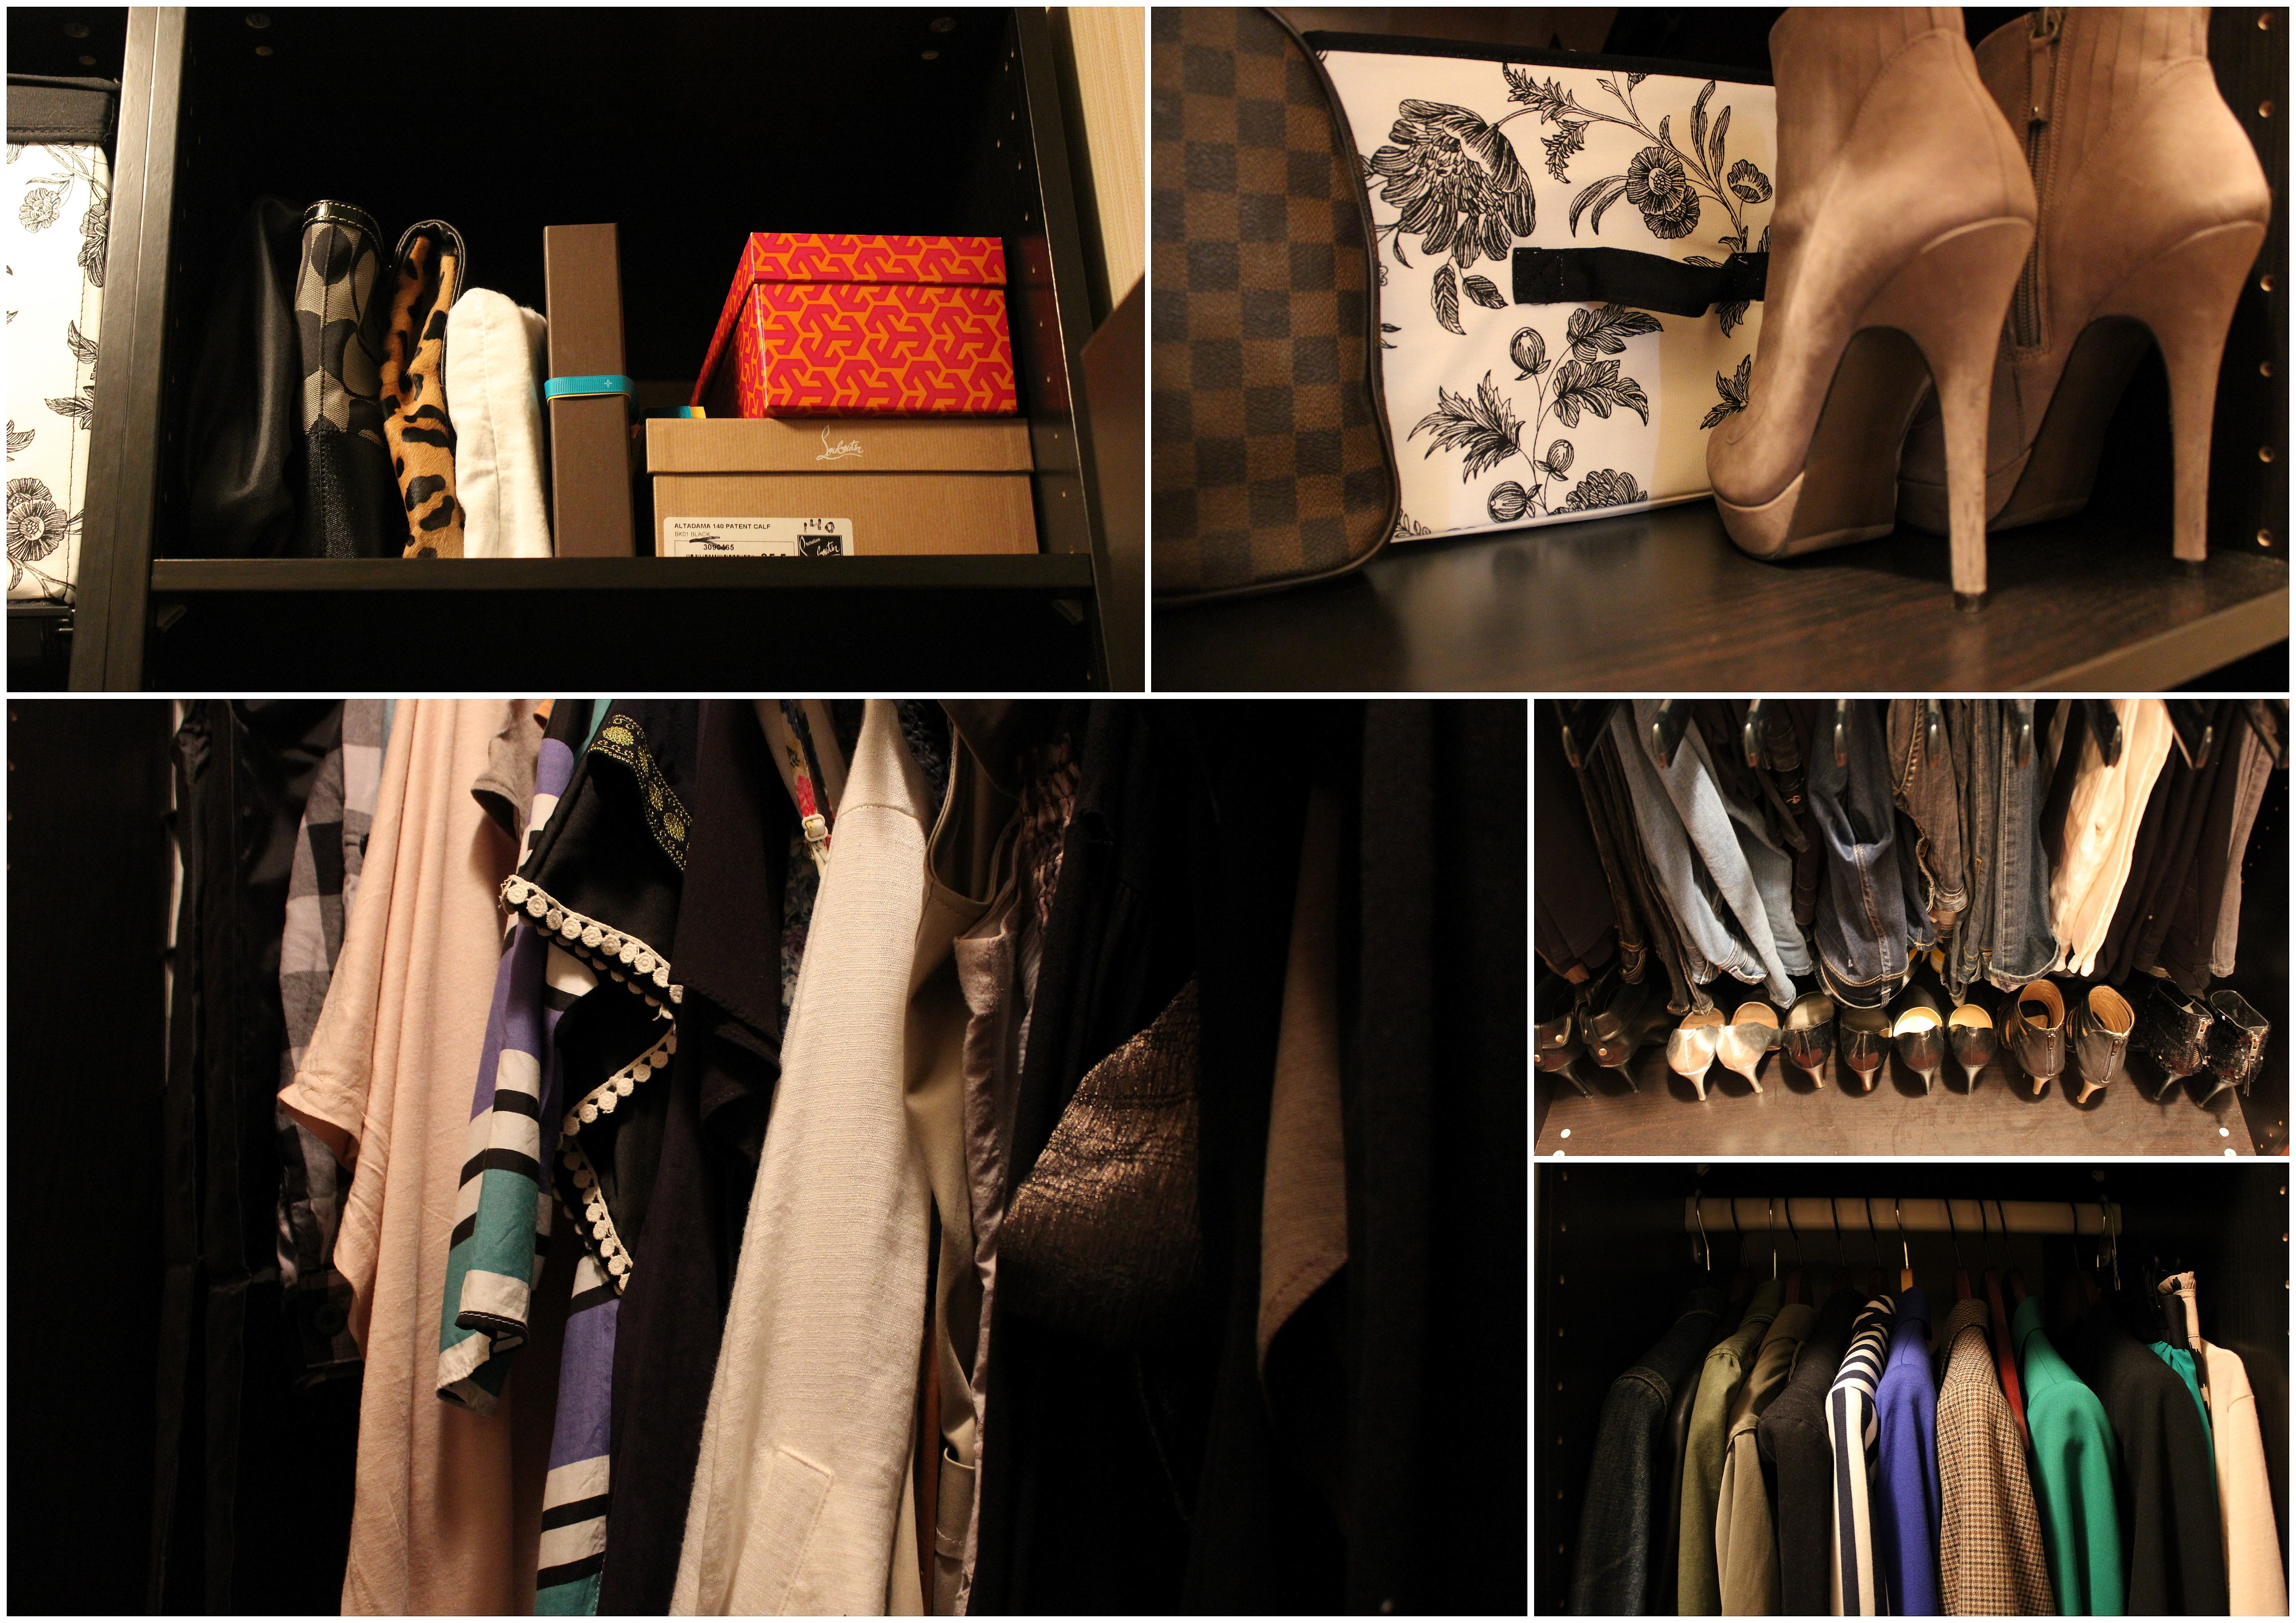 Let Me Tell You Something.. Iu0027m GLAD Itu0027s Over! I Worked On It For 2 Weeks  Straight (on The Weekends), Meaning That I Had To Put Away ALL Of My  Clothes!